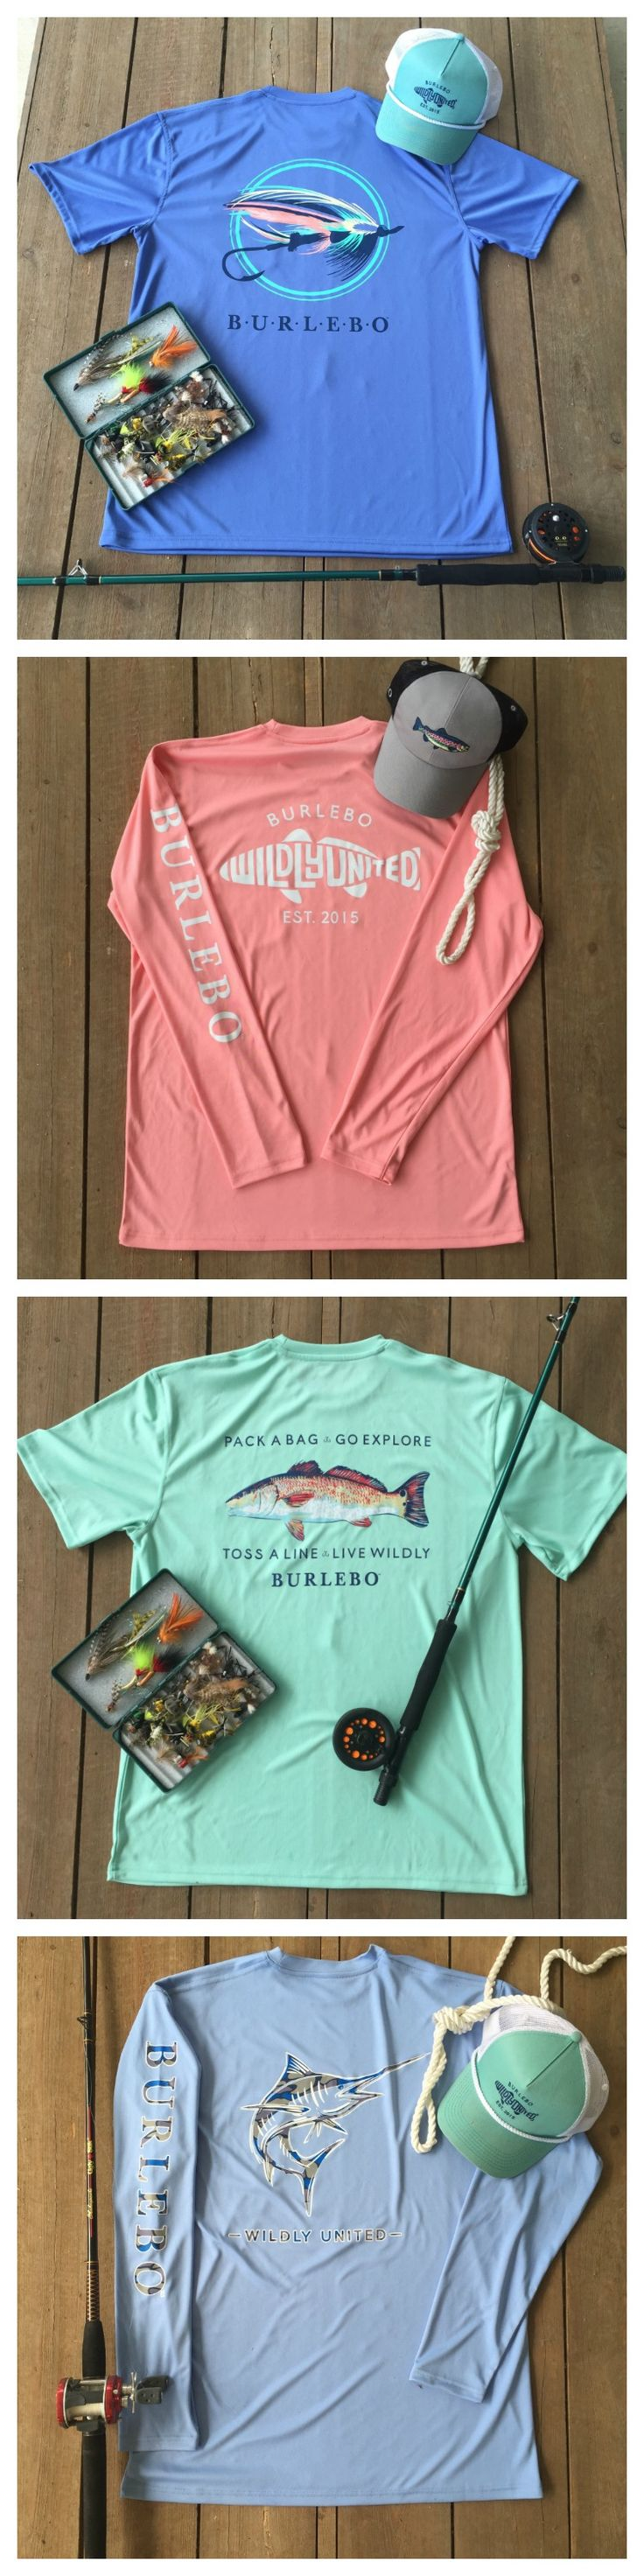 Performance Fishing Shirts that dad will love! Perfect gift for this Father's Day. Shop at Burlebo.com